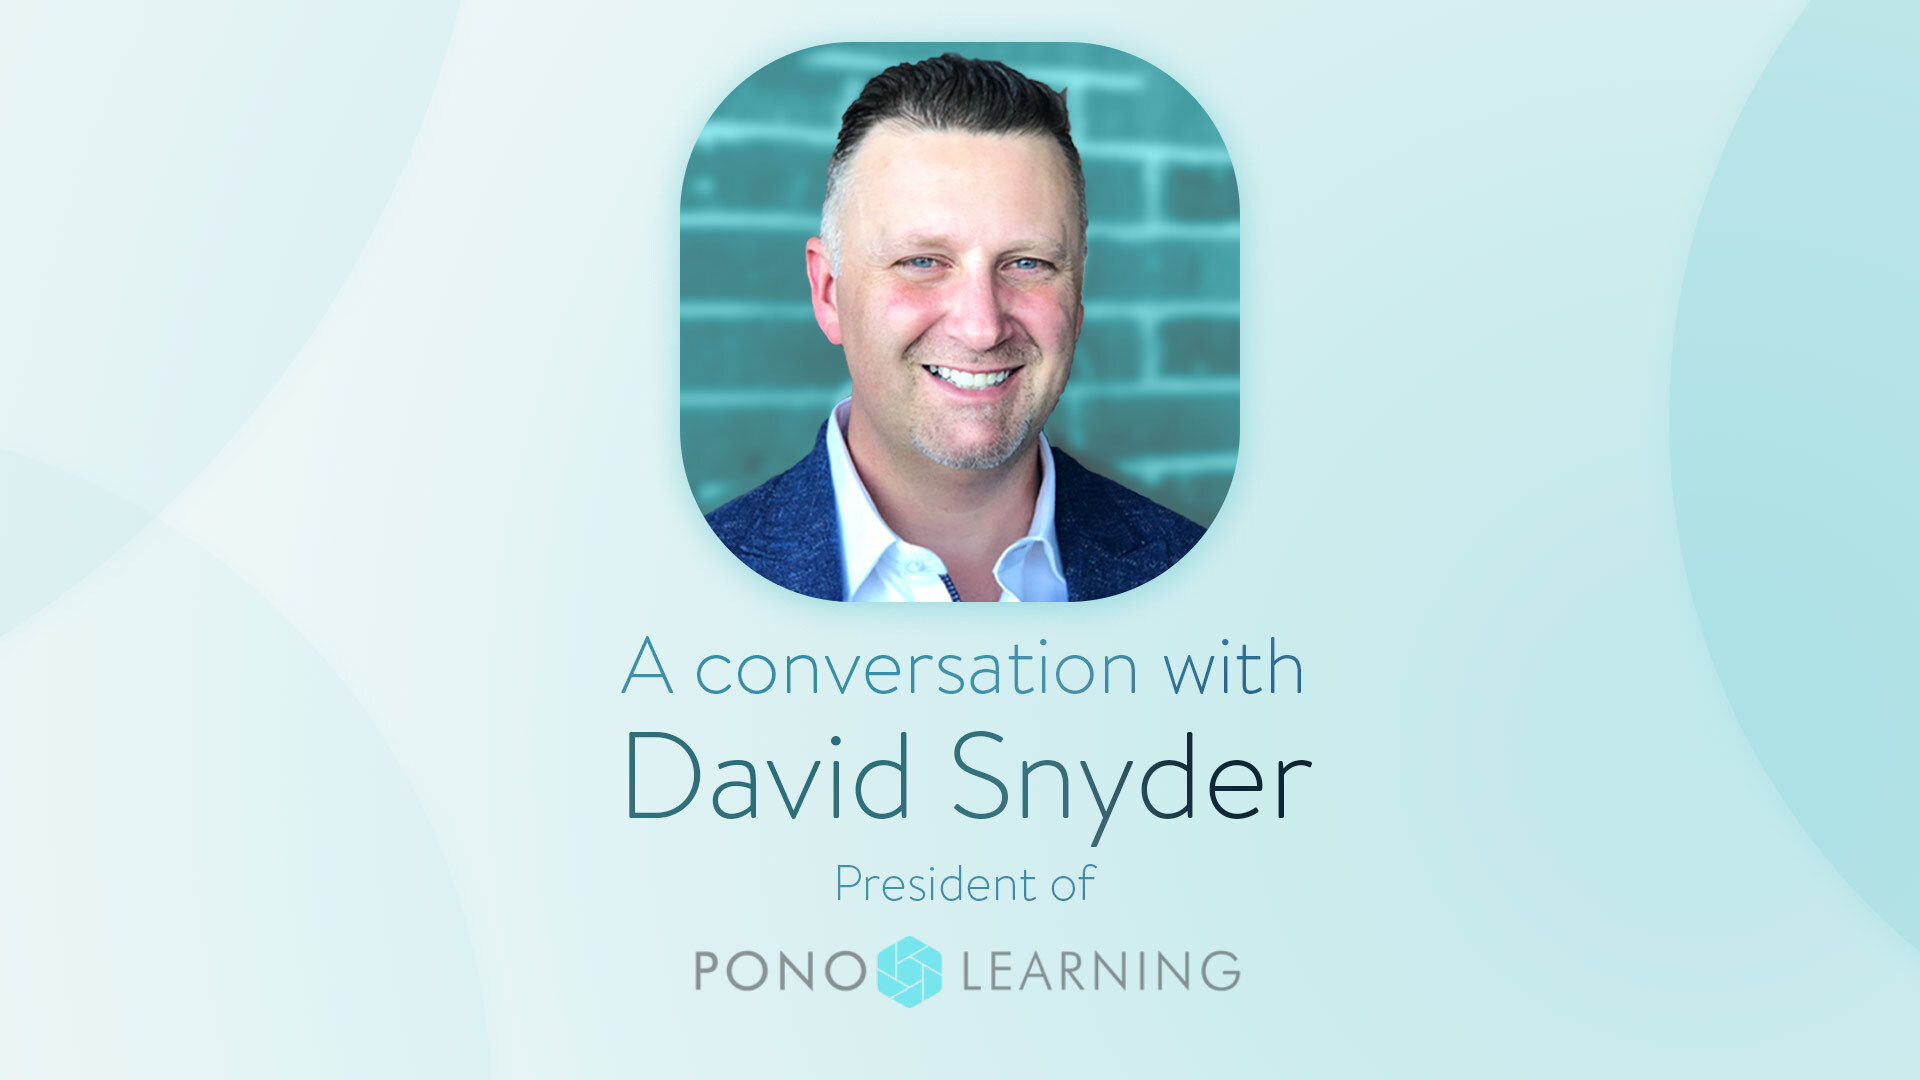 Q&A with David Snyder, President of PONO Learning